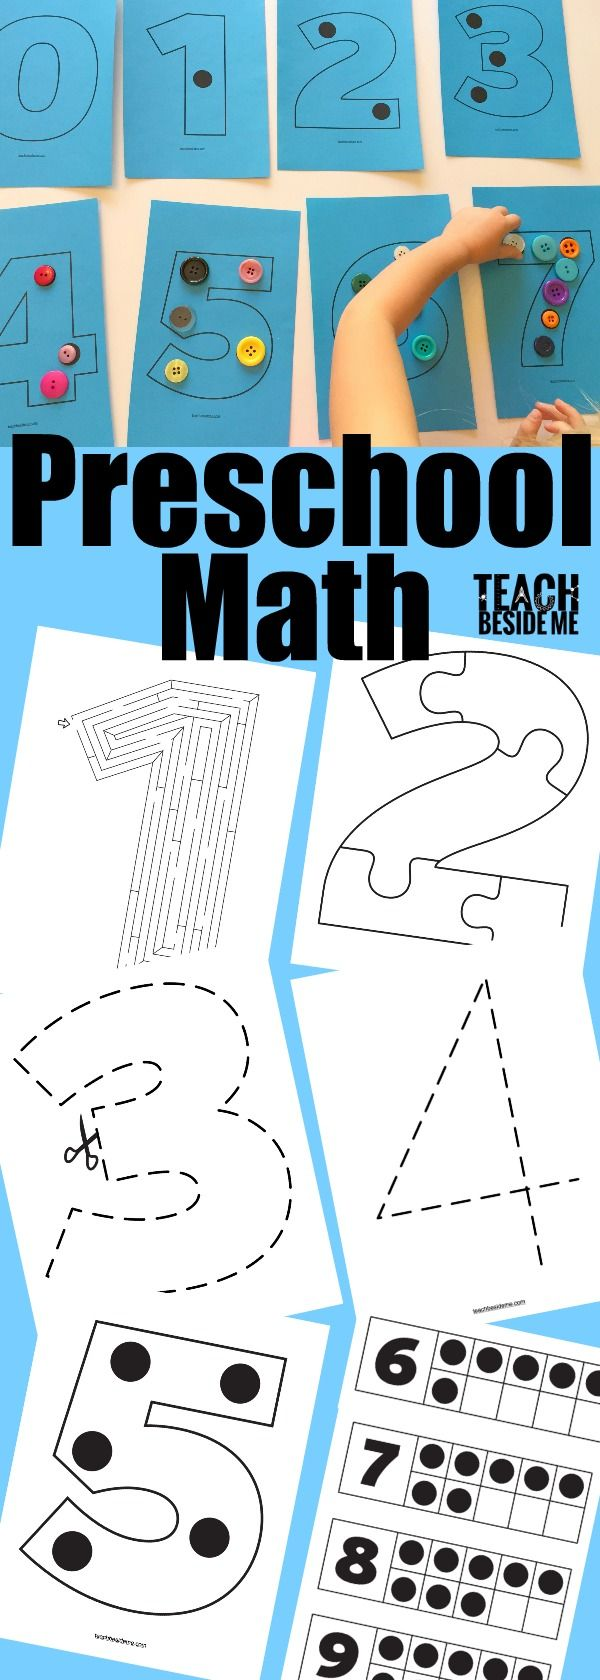 559 best Math Activities images on Pinterest | Pre school, Pre ...